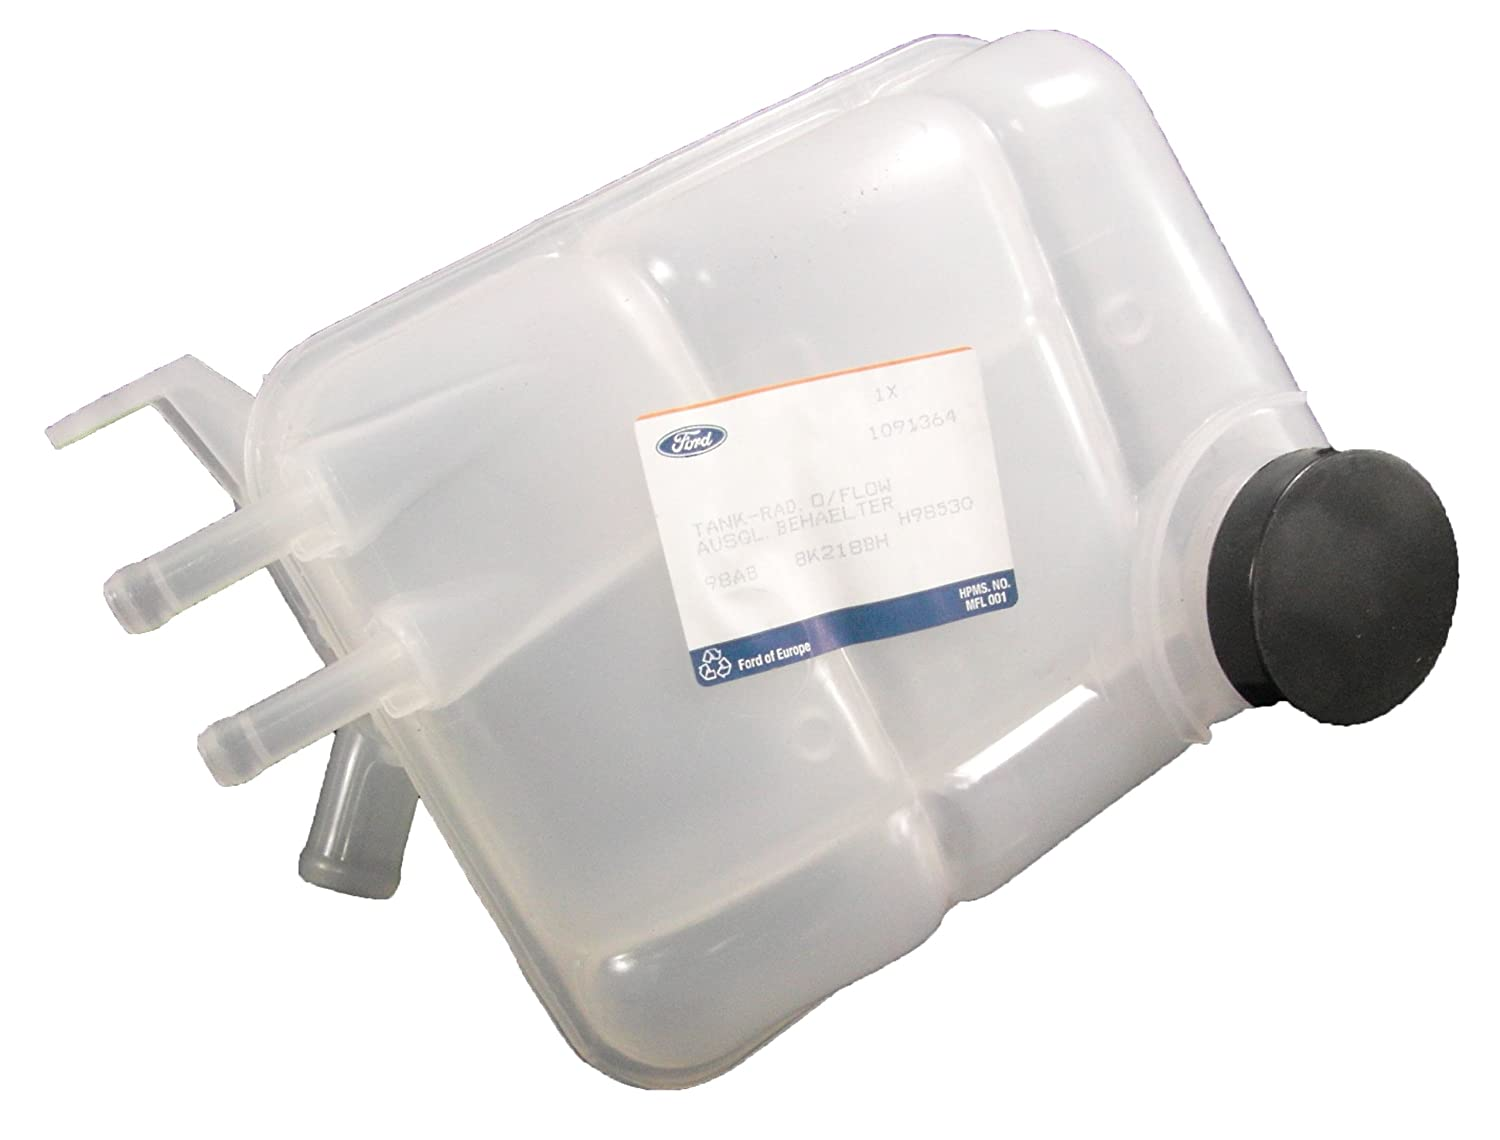 Ford Focus Mk1 Radiator Expansion Tank 1998-2005 Zetec-S 1.4/ 1.6 Ford Motor Company 1091364